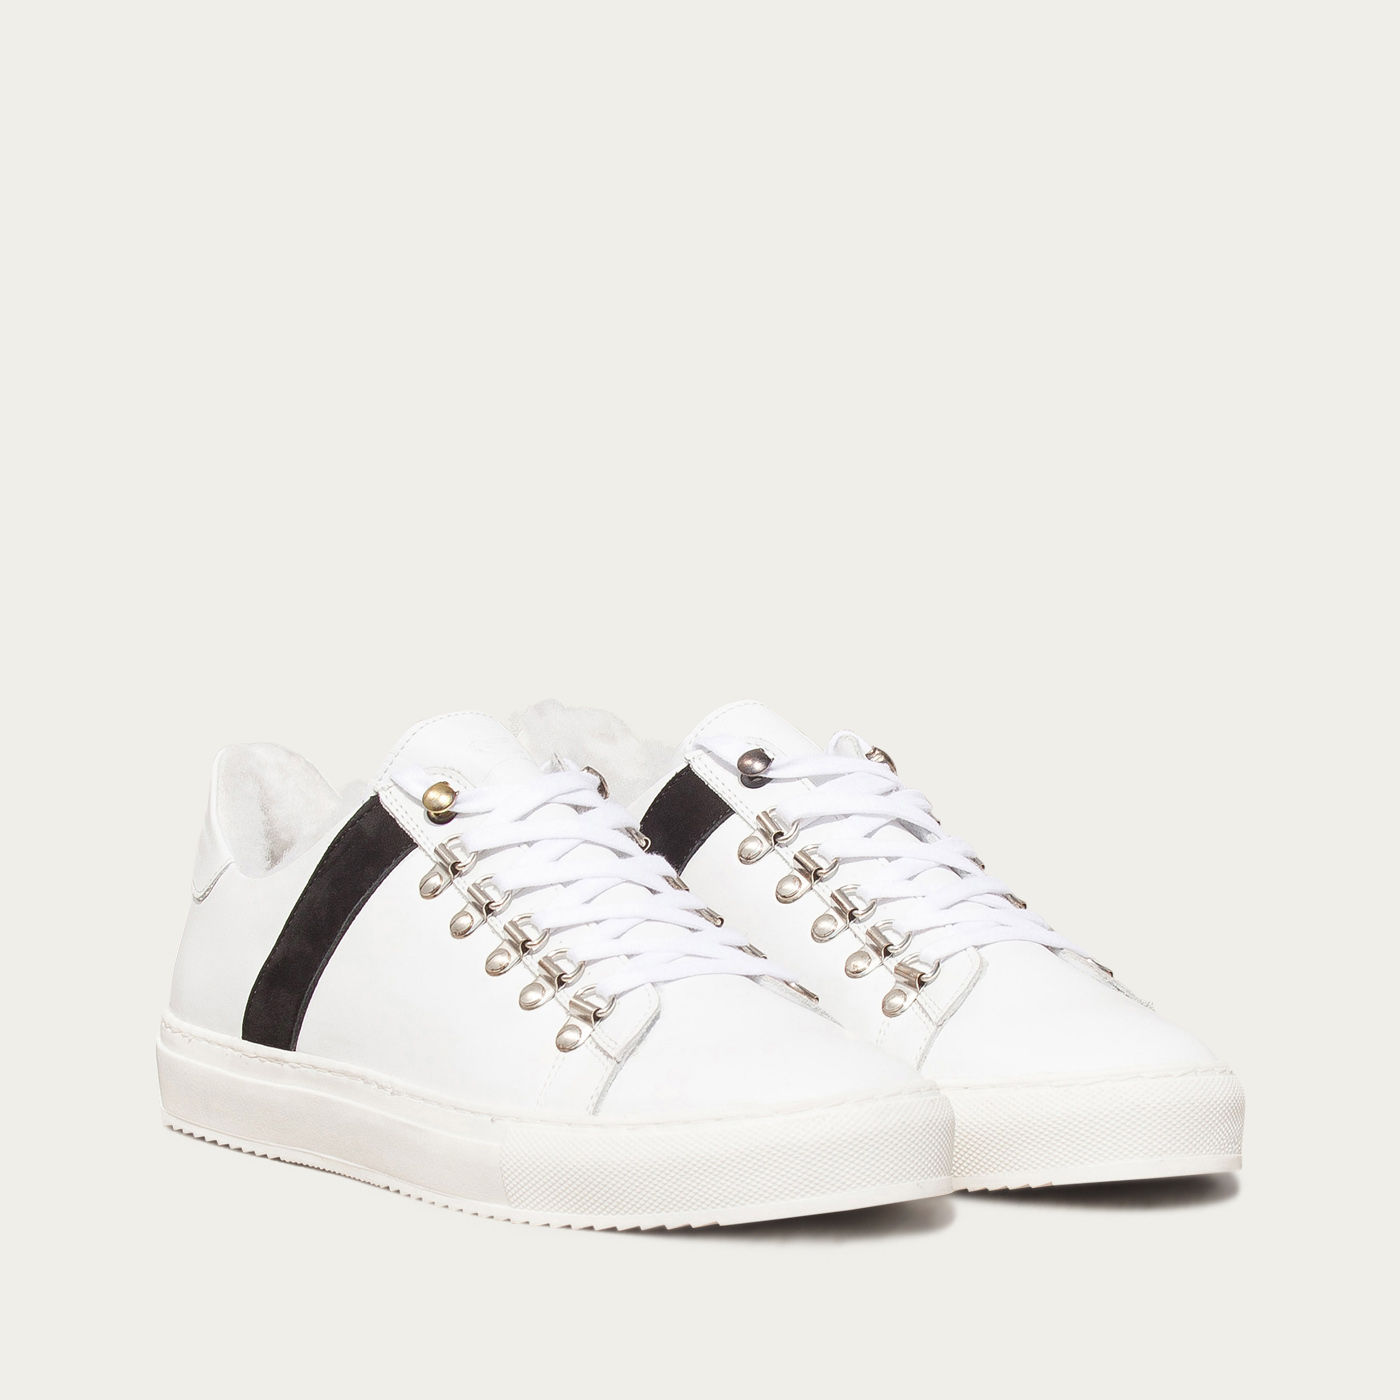 White and Black Mountain Sneakers | Bombinate